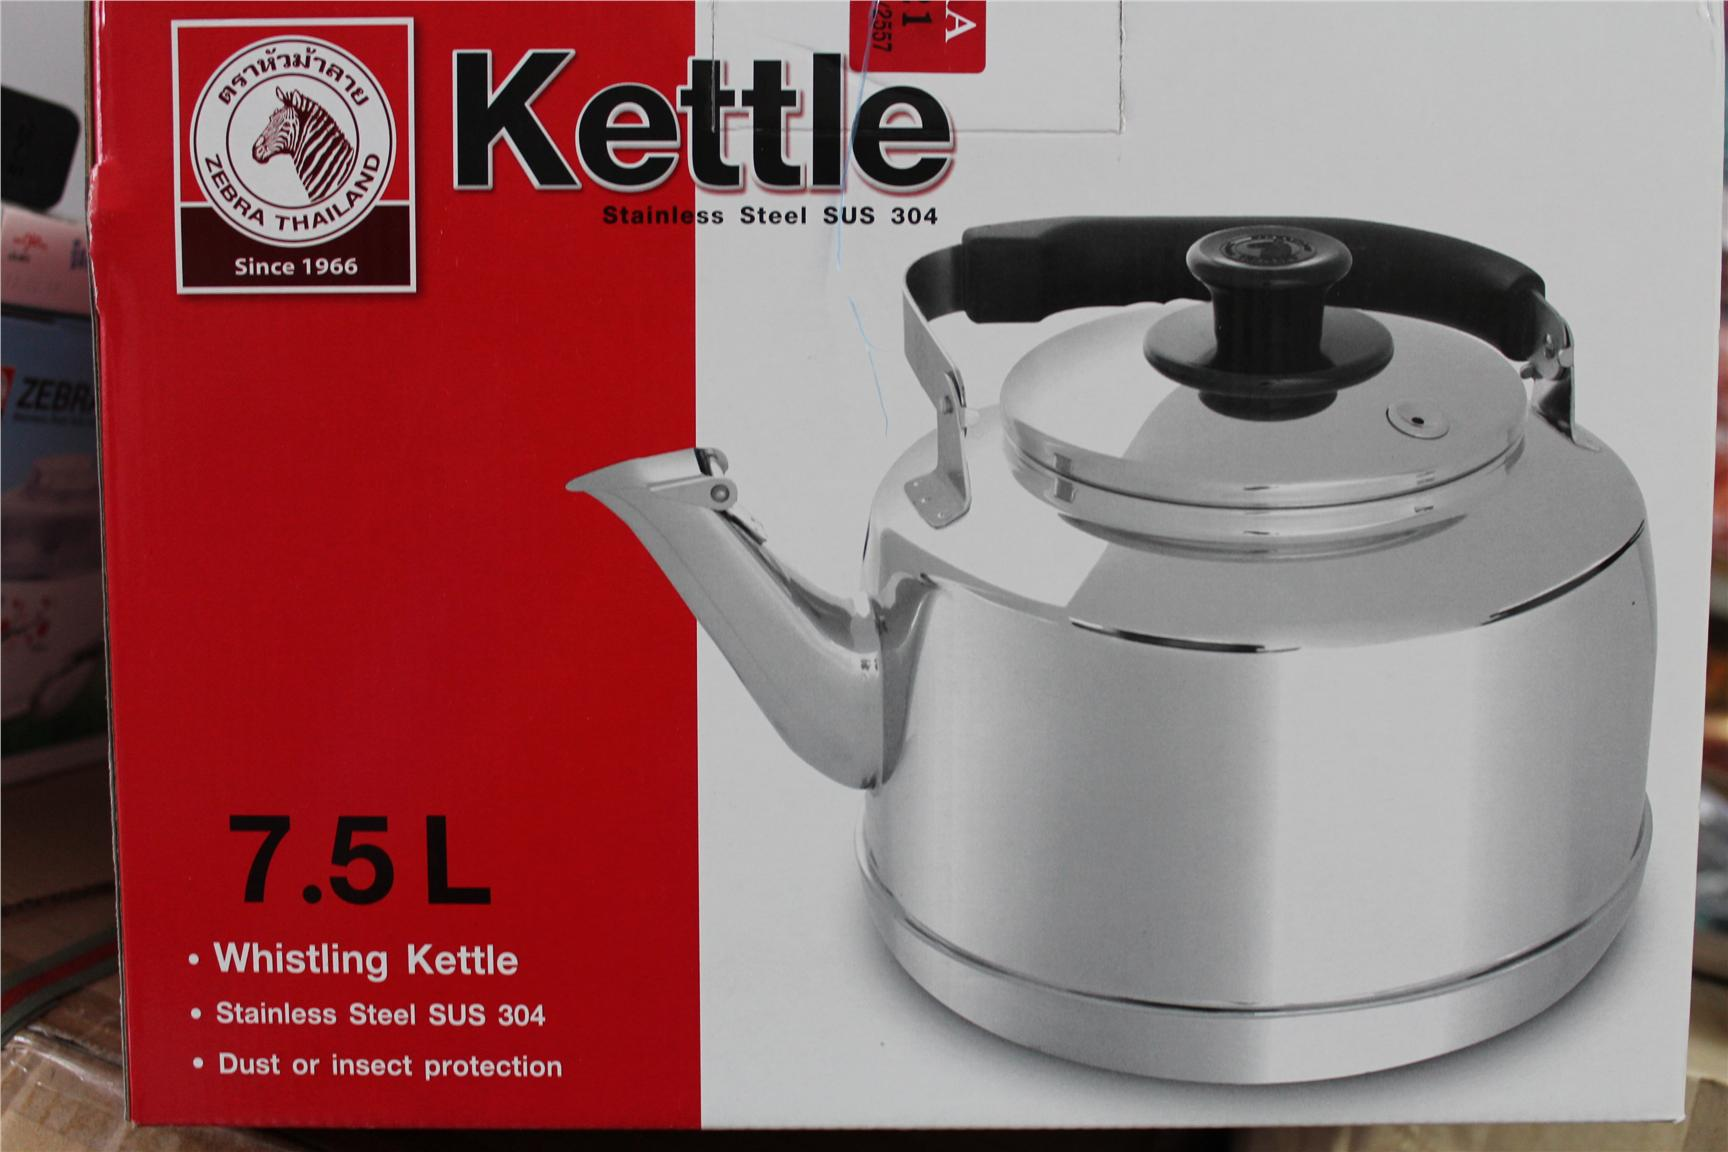 Zebra Kettle 7.5L 【Thailand Version】